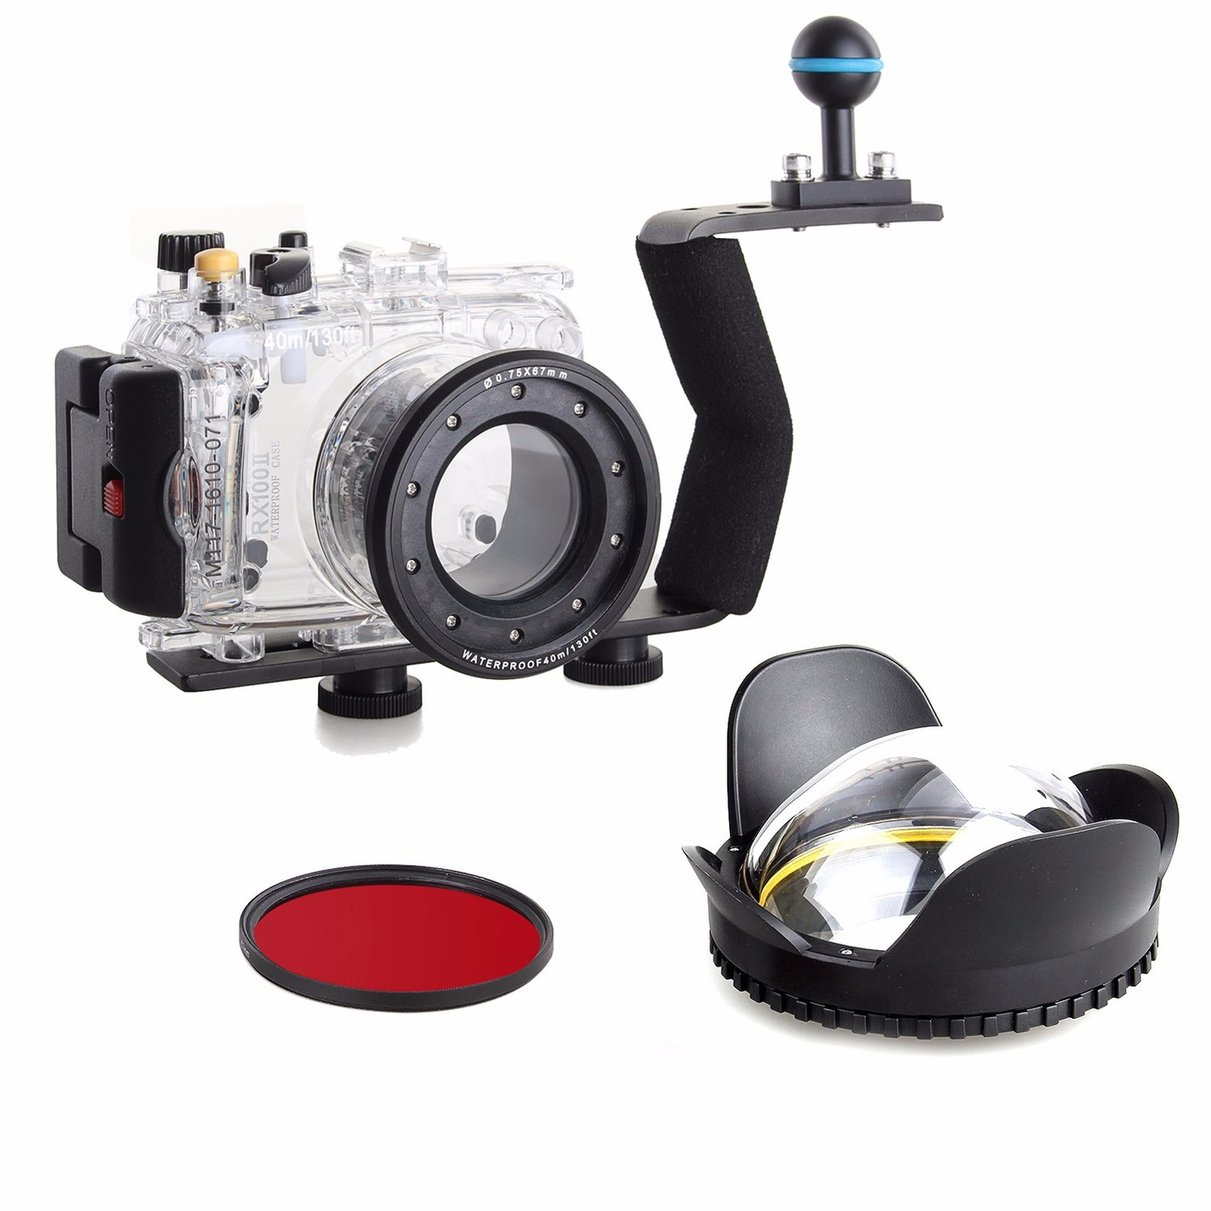 40m Waterproof Underwater Camera Housing Diving Case for SONY RX100 II  + 67mm Fisheye Lens + Aluminium Diving handle w/ filter voking aluminum 100m 325ft waterproof case underwater housing for sony a7s ii